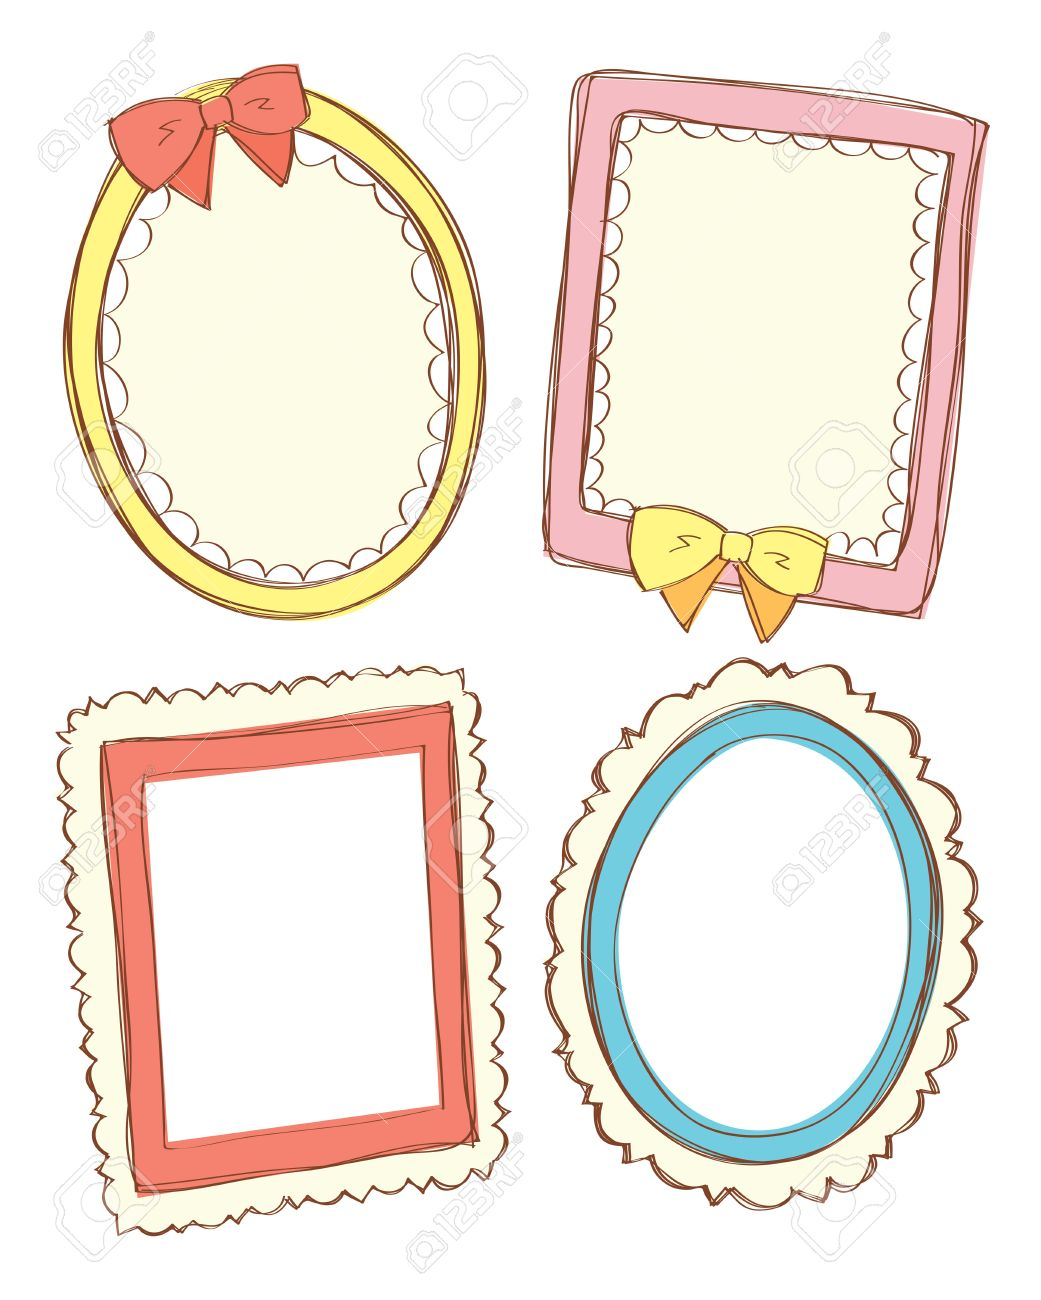 3 clipart cute. Frame station